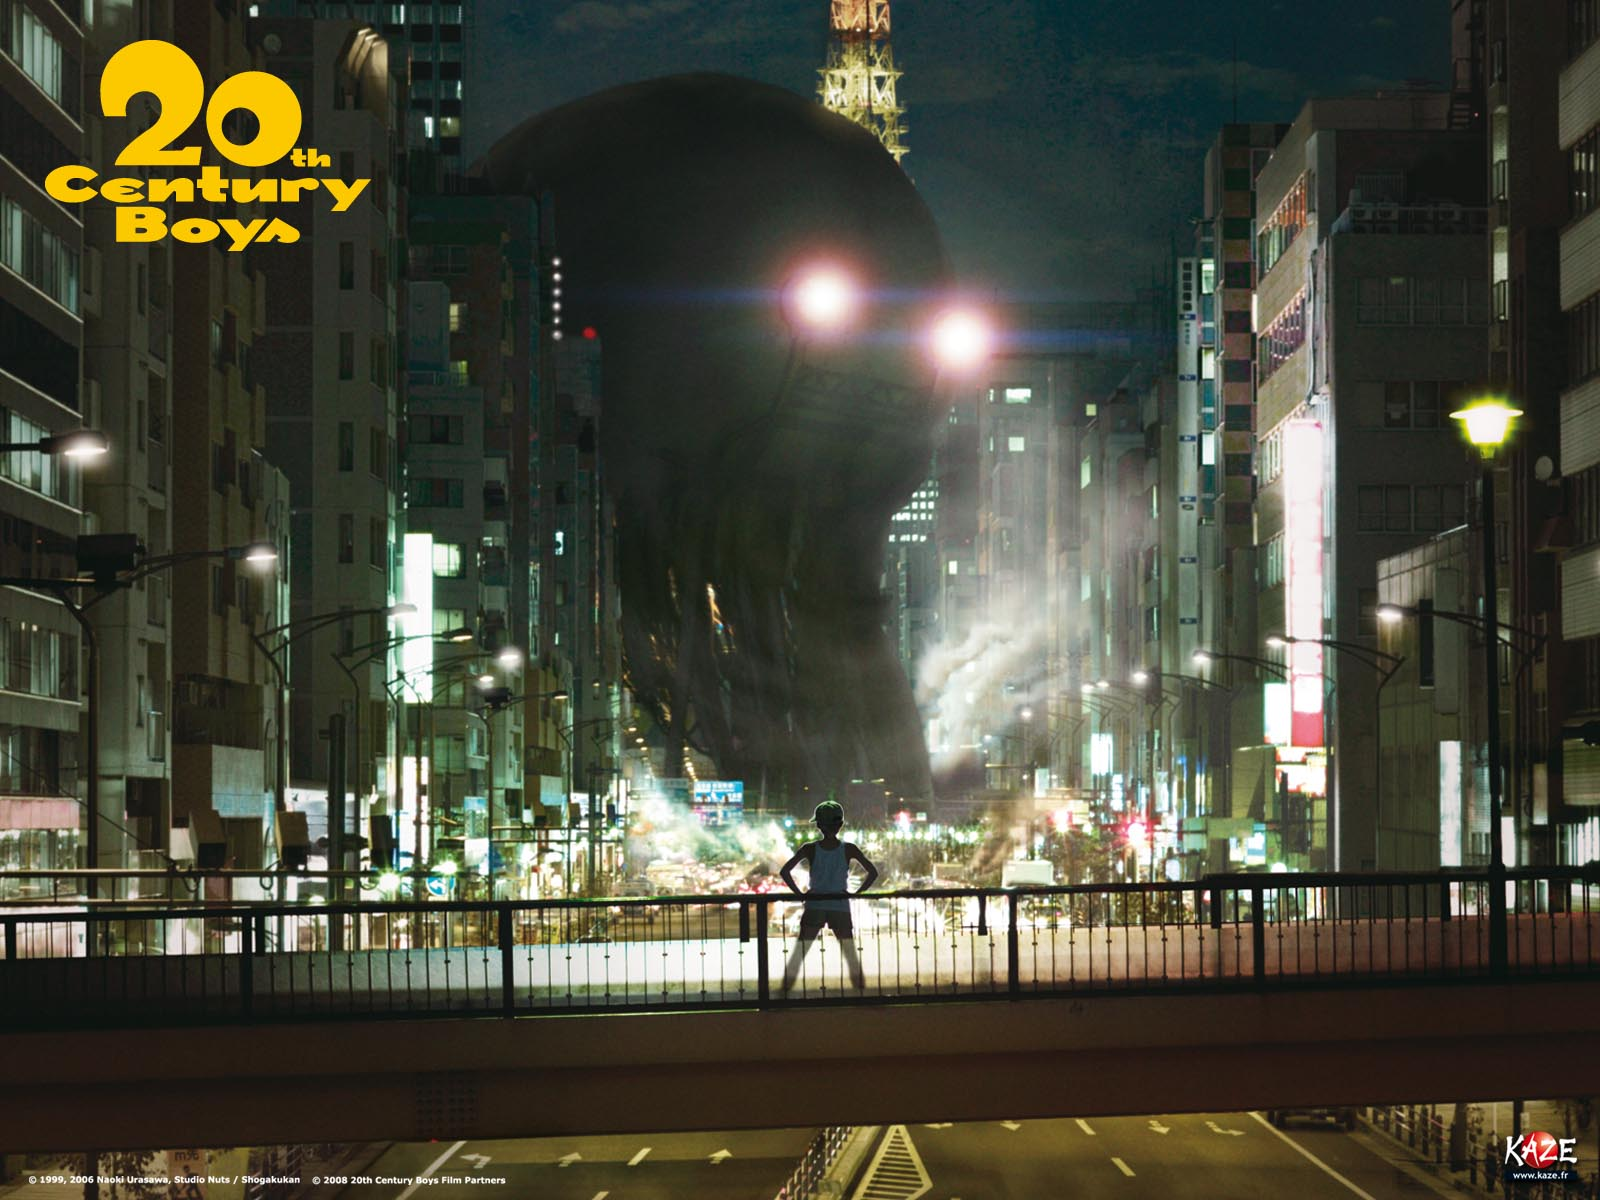 Wallpaper officiel du film 20th Century Boys